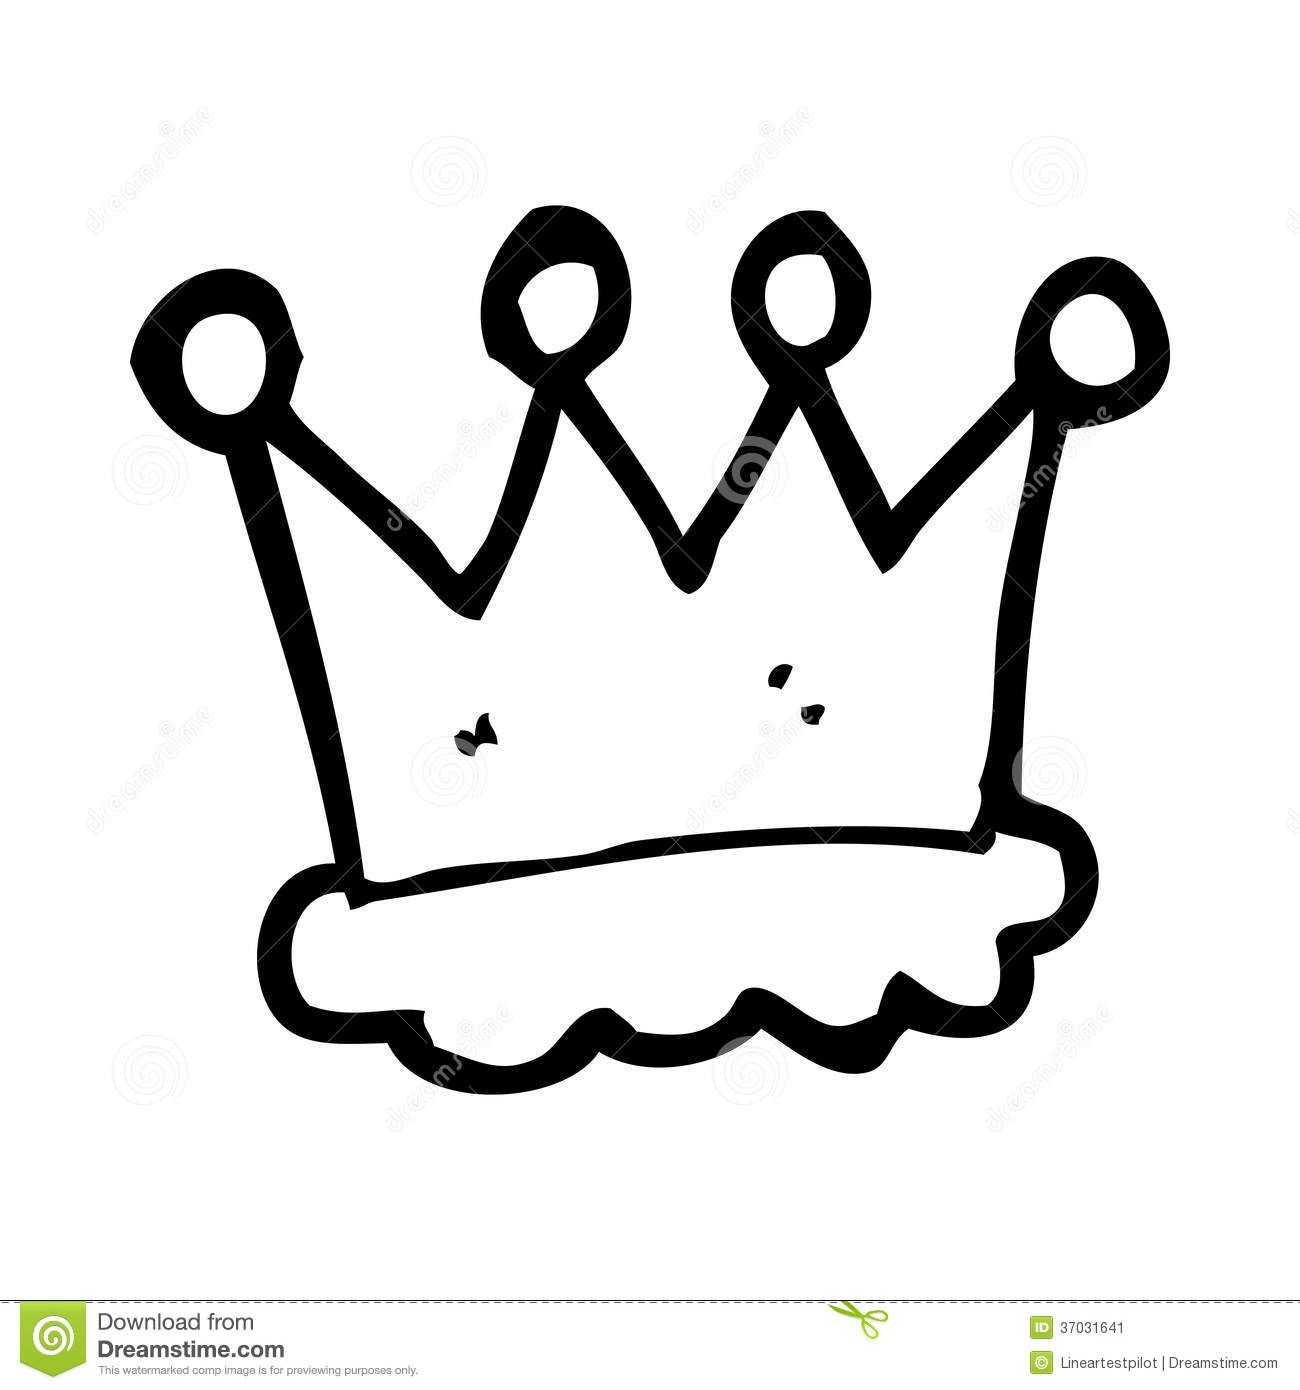 Cartoon Crown Symbol Stock Illustration Illustration Of Cartoon 37031641 I hope you can find a. dreamstime com